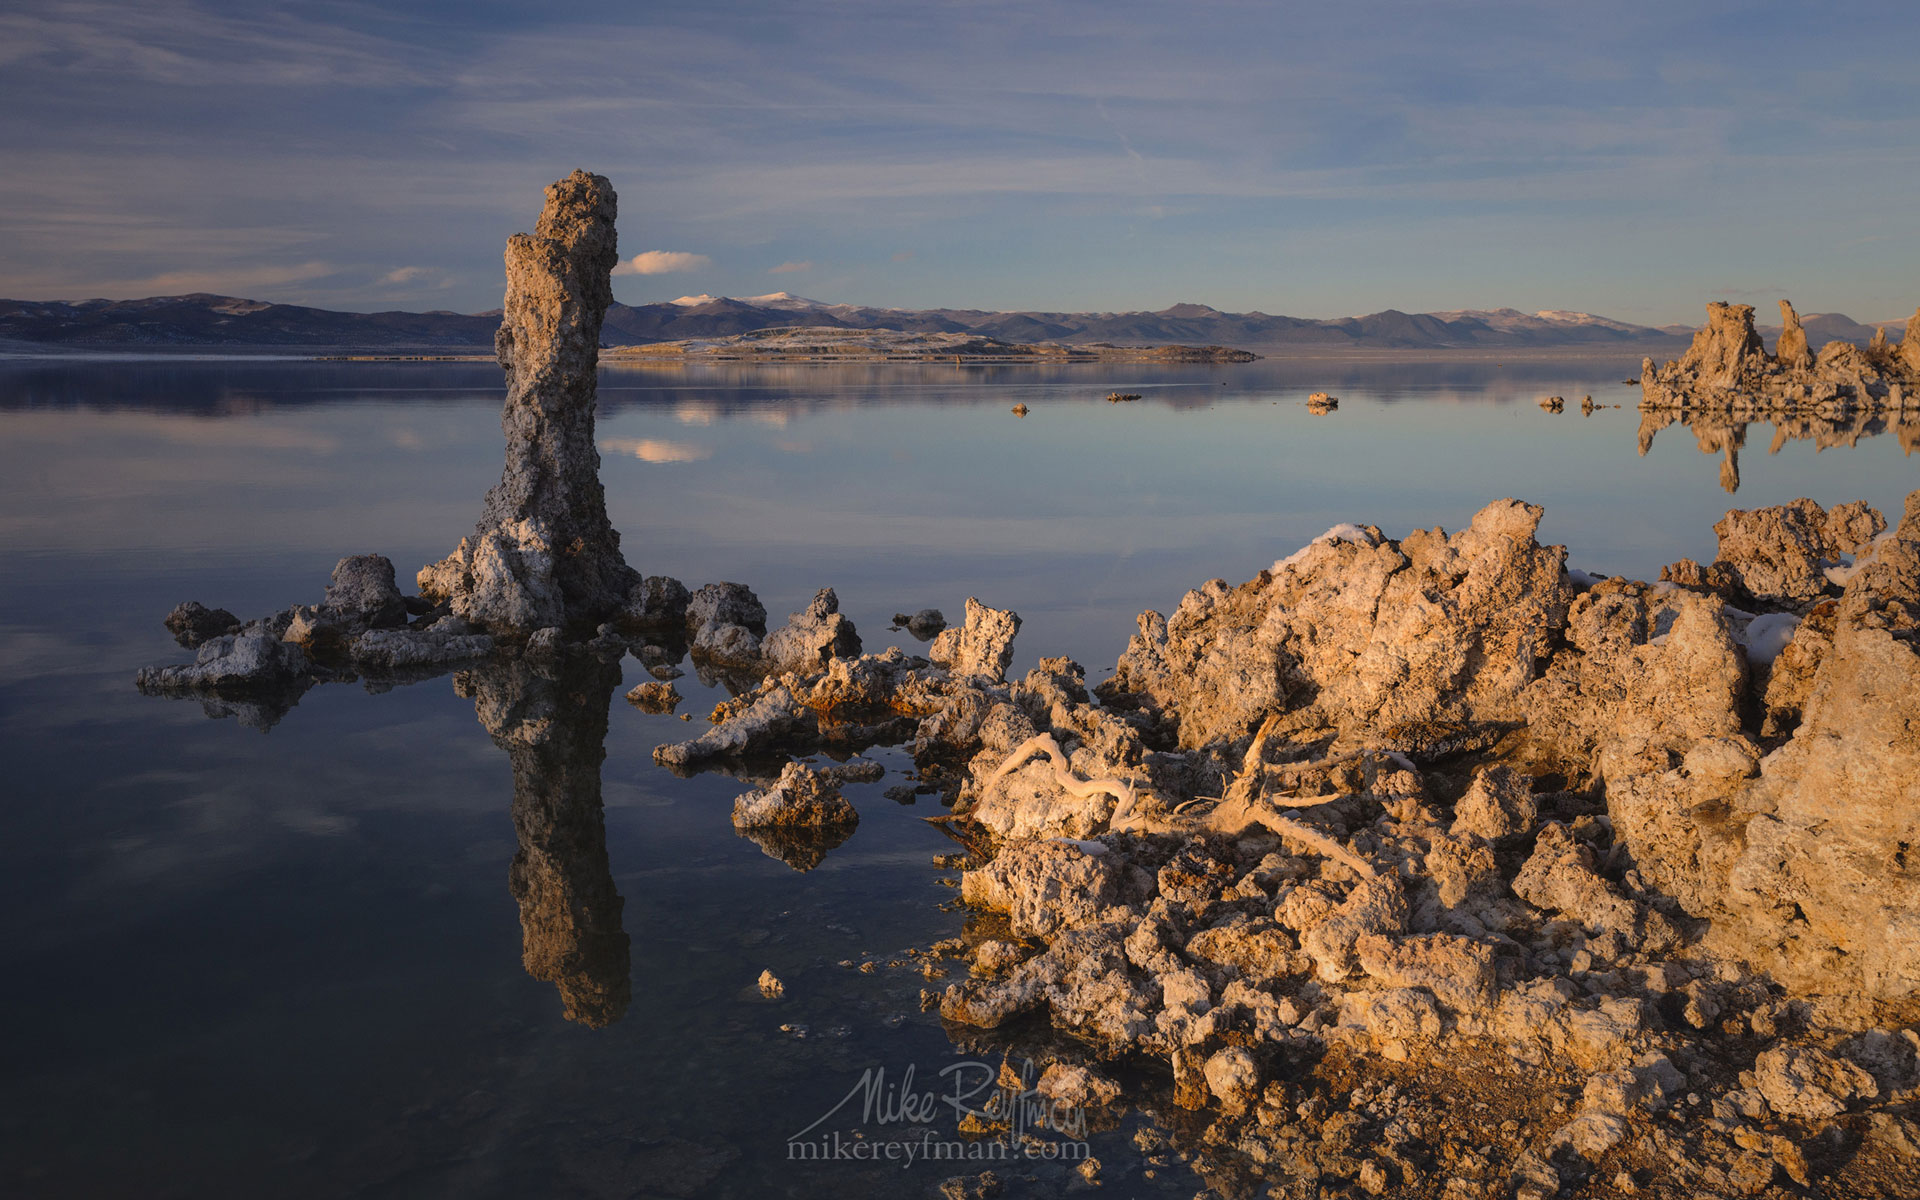 Mono Lake, Tufa State Natural Reserve, Eastern Sierra, California, USA ML1-MRN3X0643 - Mono Lake Tufa State Natural Reserve, Eastern Sierra, California - Mike Reyfman Photography